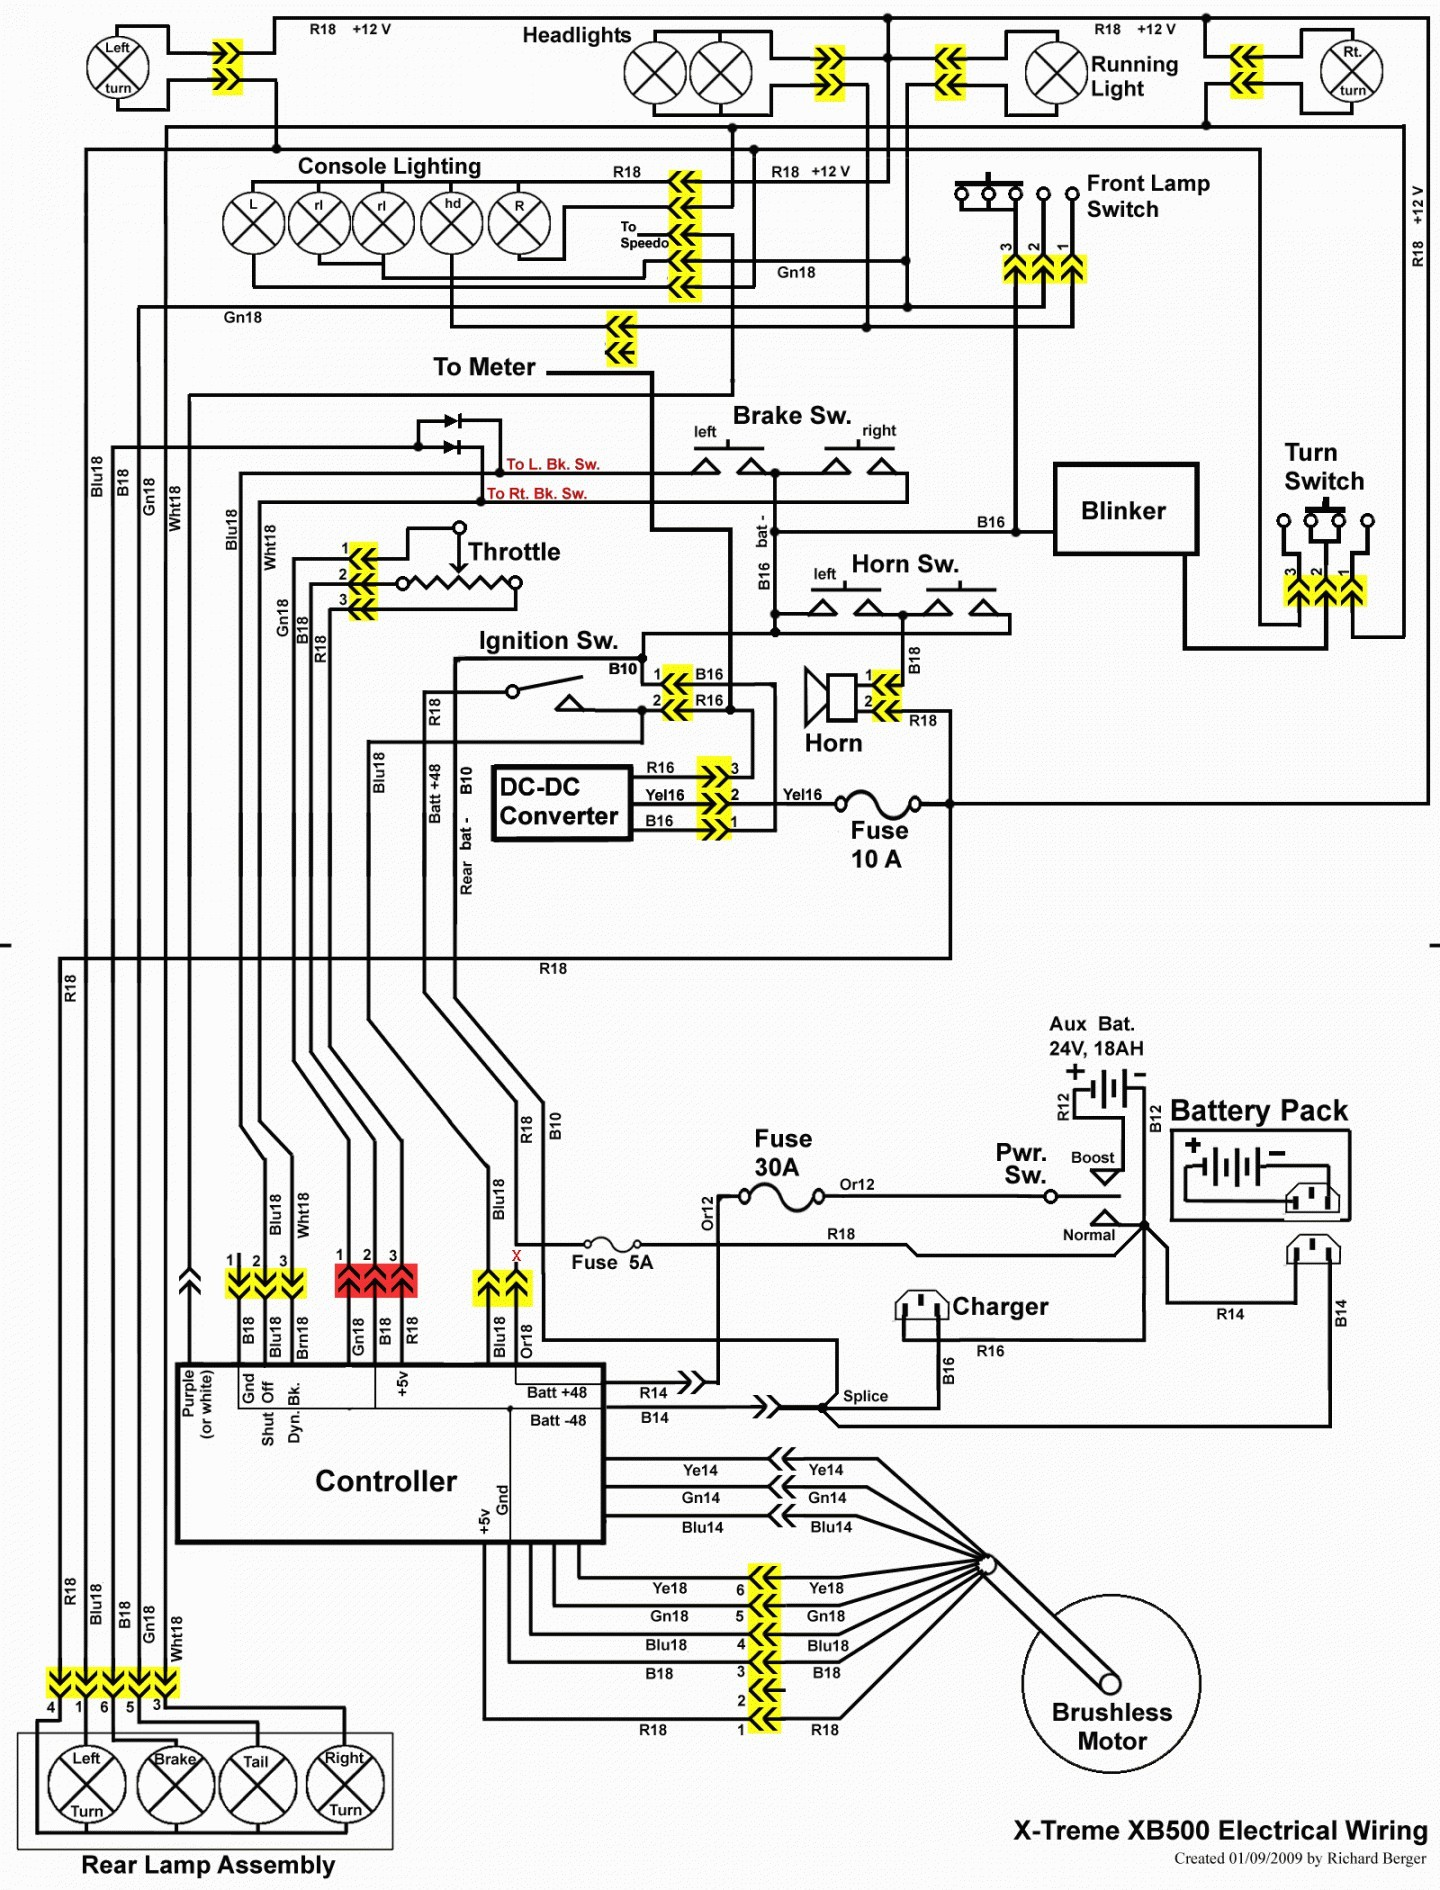 wiring diagram likewise tao tao 50cc scooter moped on tao 50 scooter Chinese ATV Wiring Diagrams